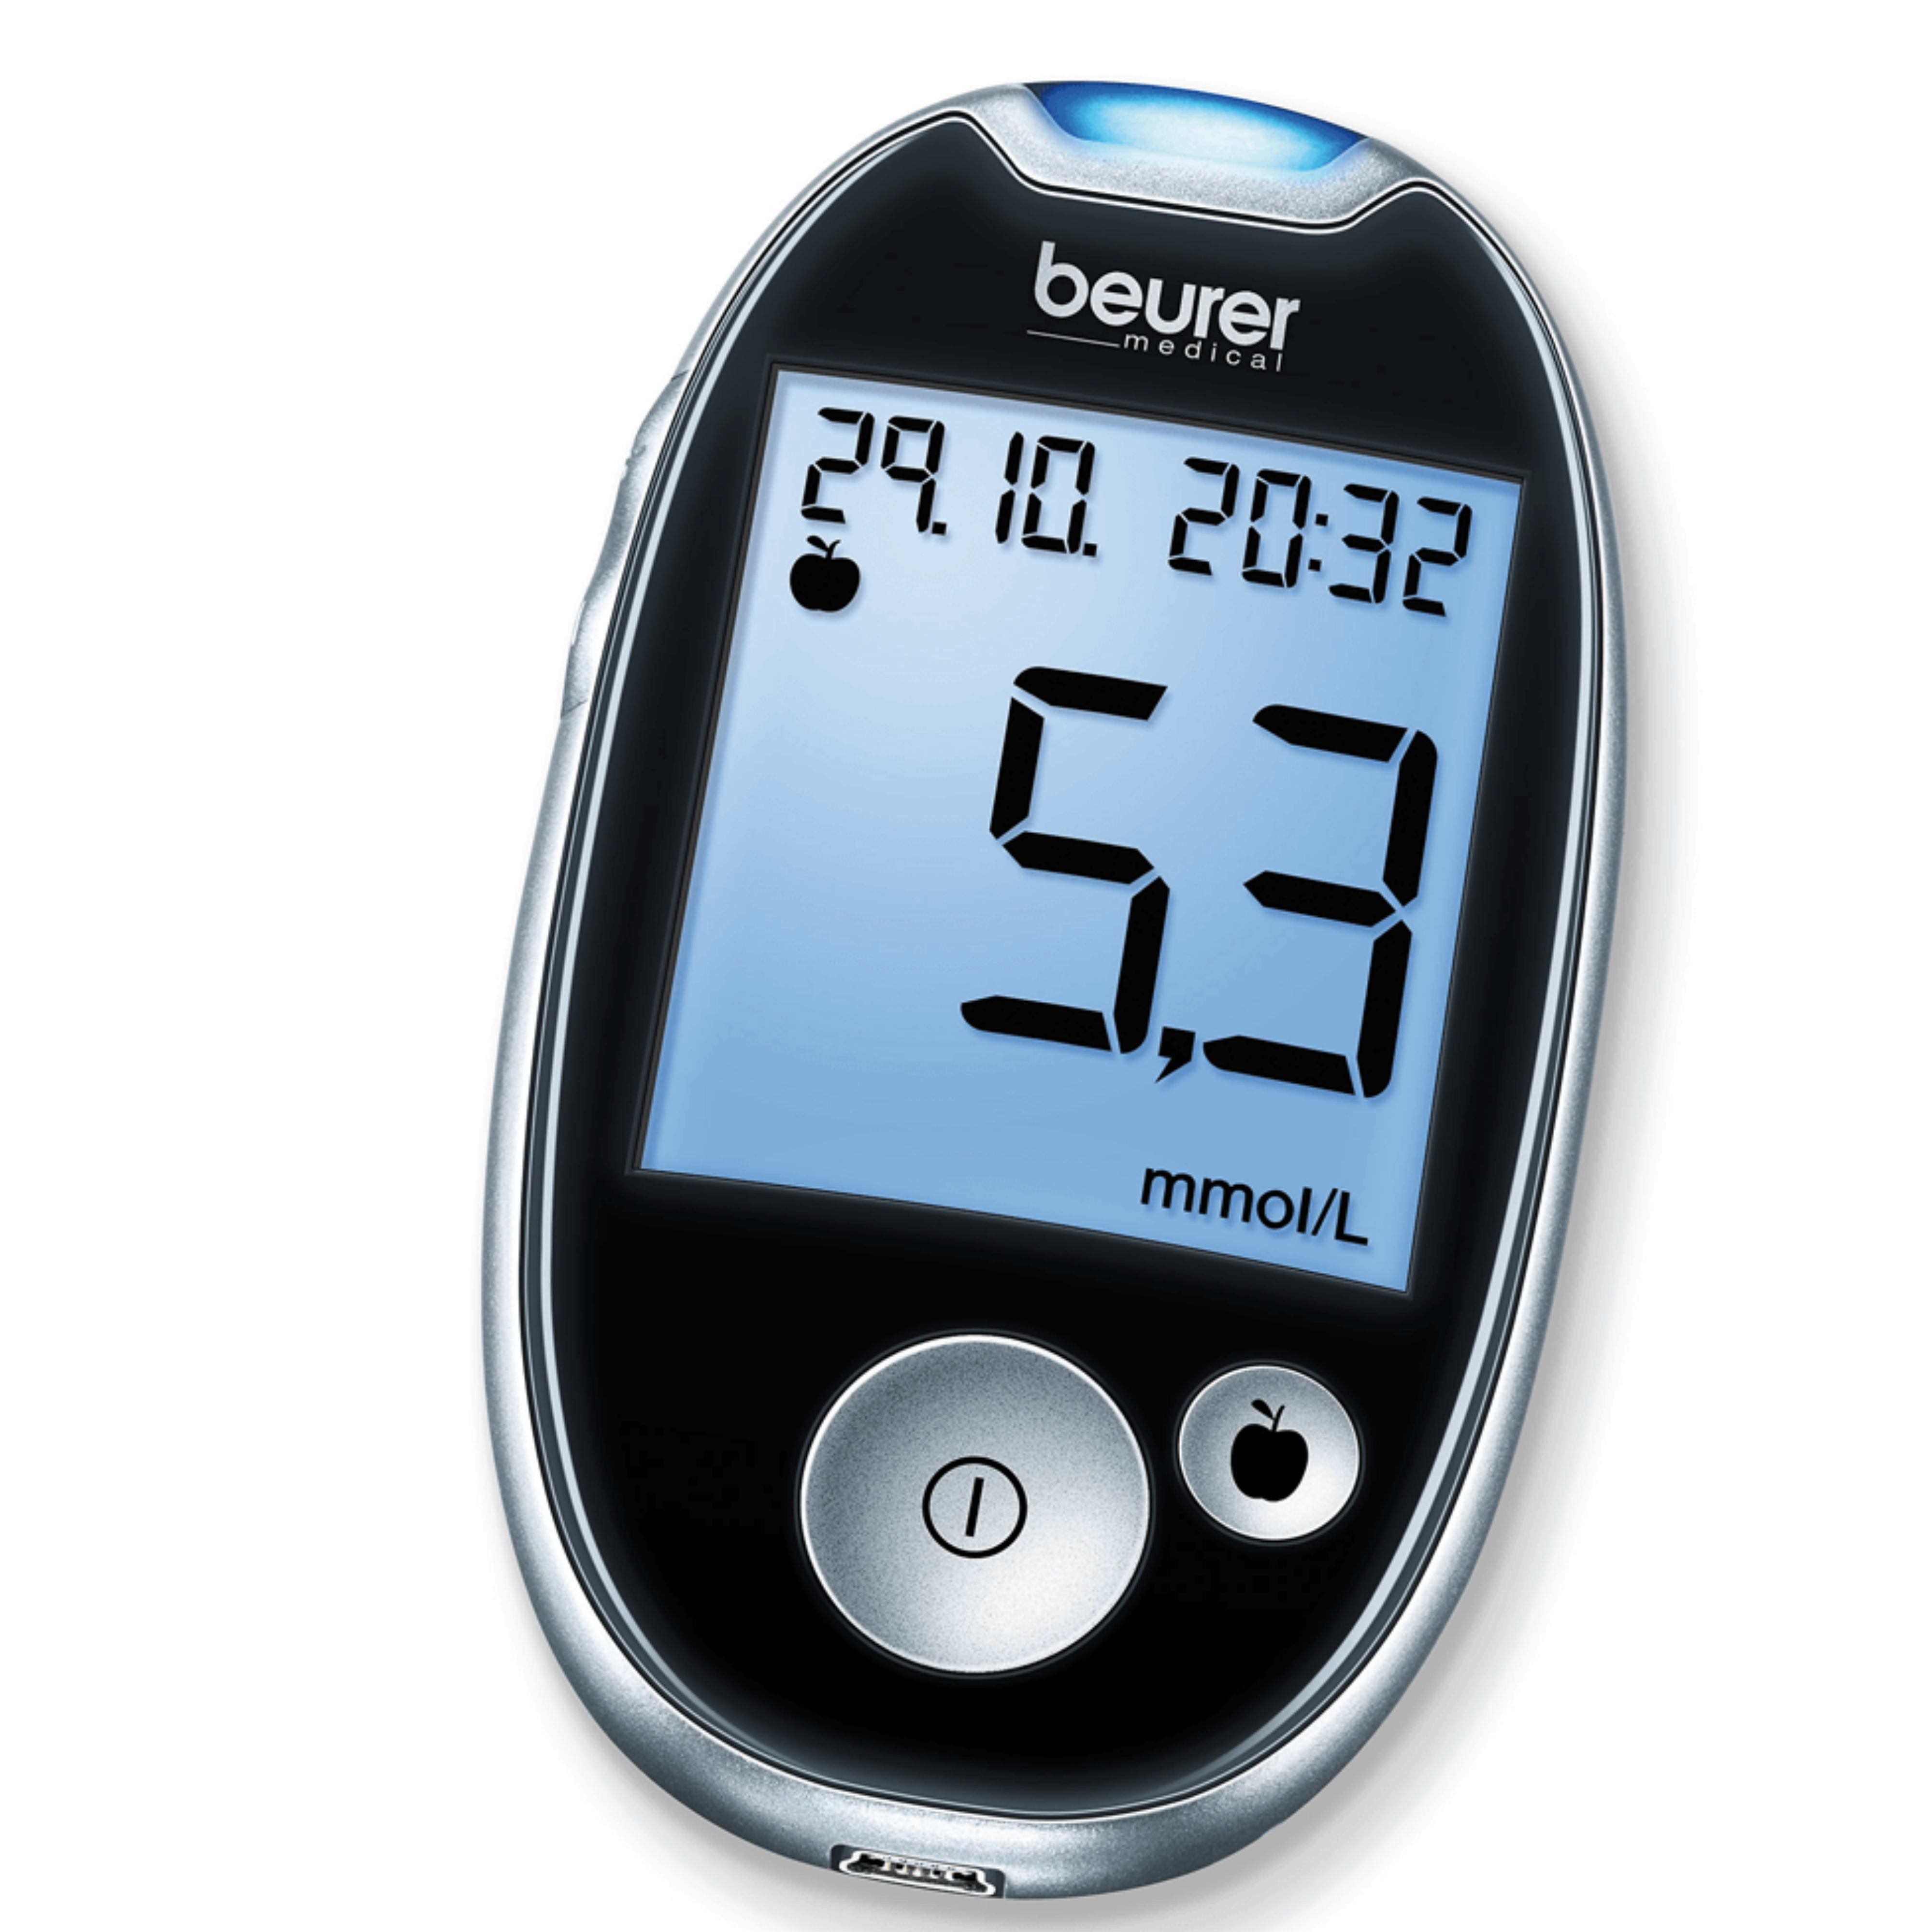 Beurer GL44 Blood Glucose Measuring Device|Large Display|Test Strip|480 Memory|